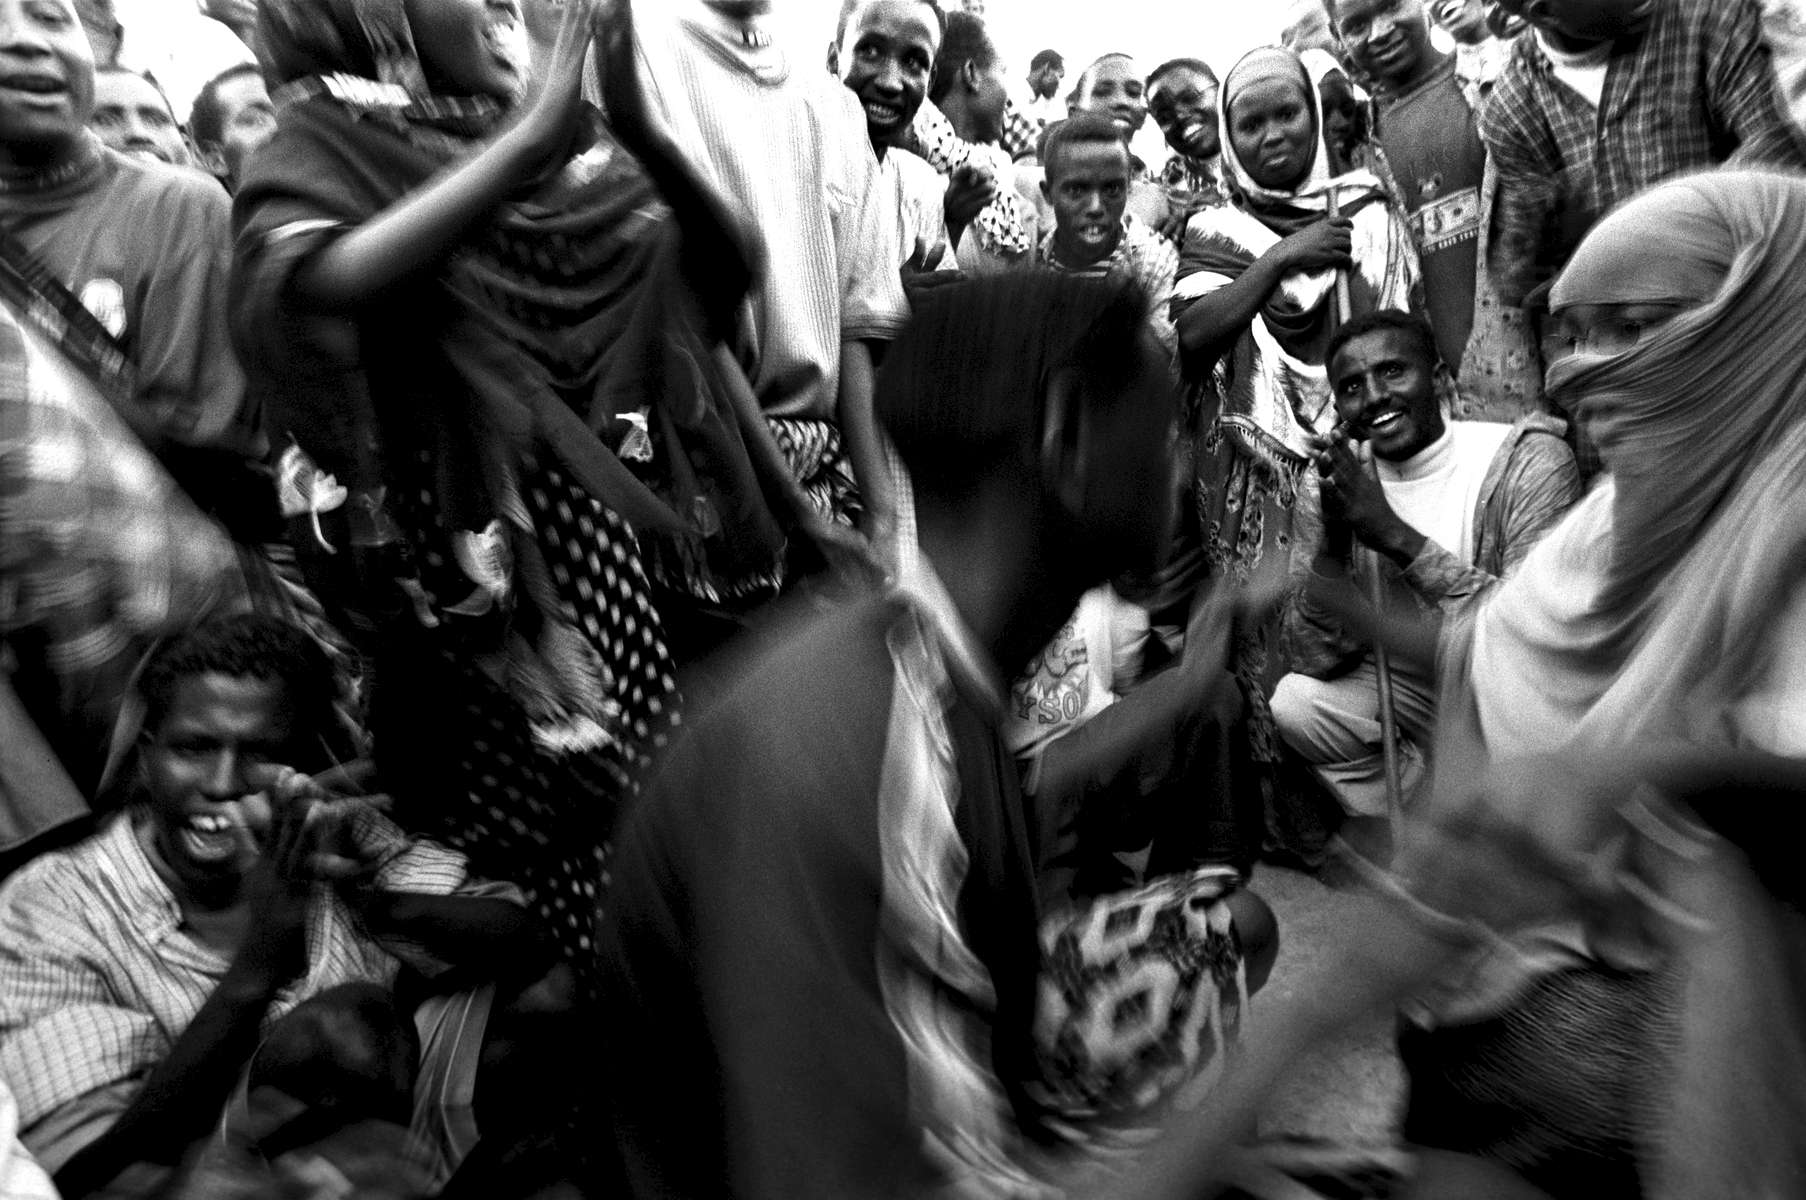 Dancing at the beginning of Bakr-id, an important Muslim festival, Mogadishu 2002